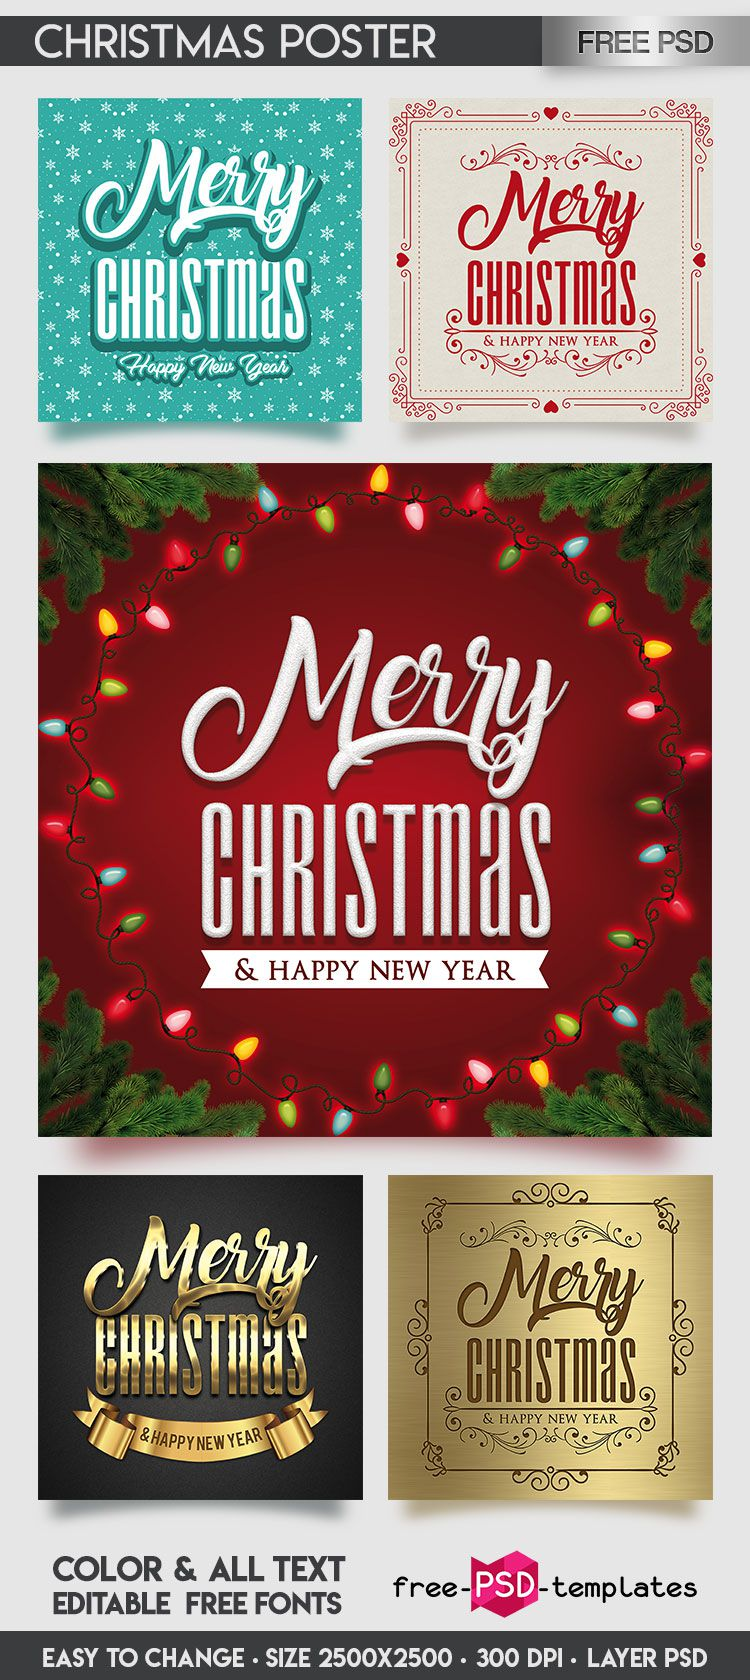 009 Fascinating Free Christma Poster Template Inspiration  Uk Party Download FairFull